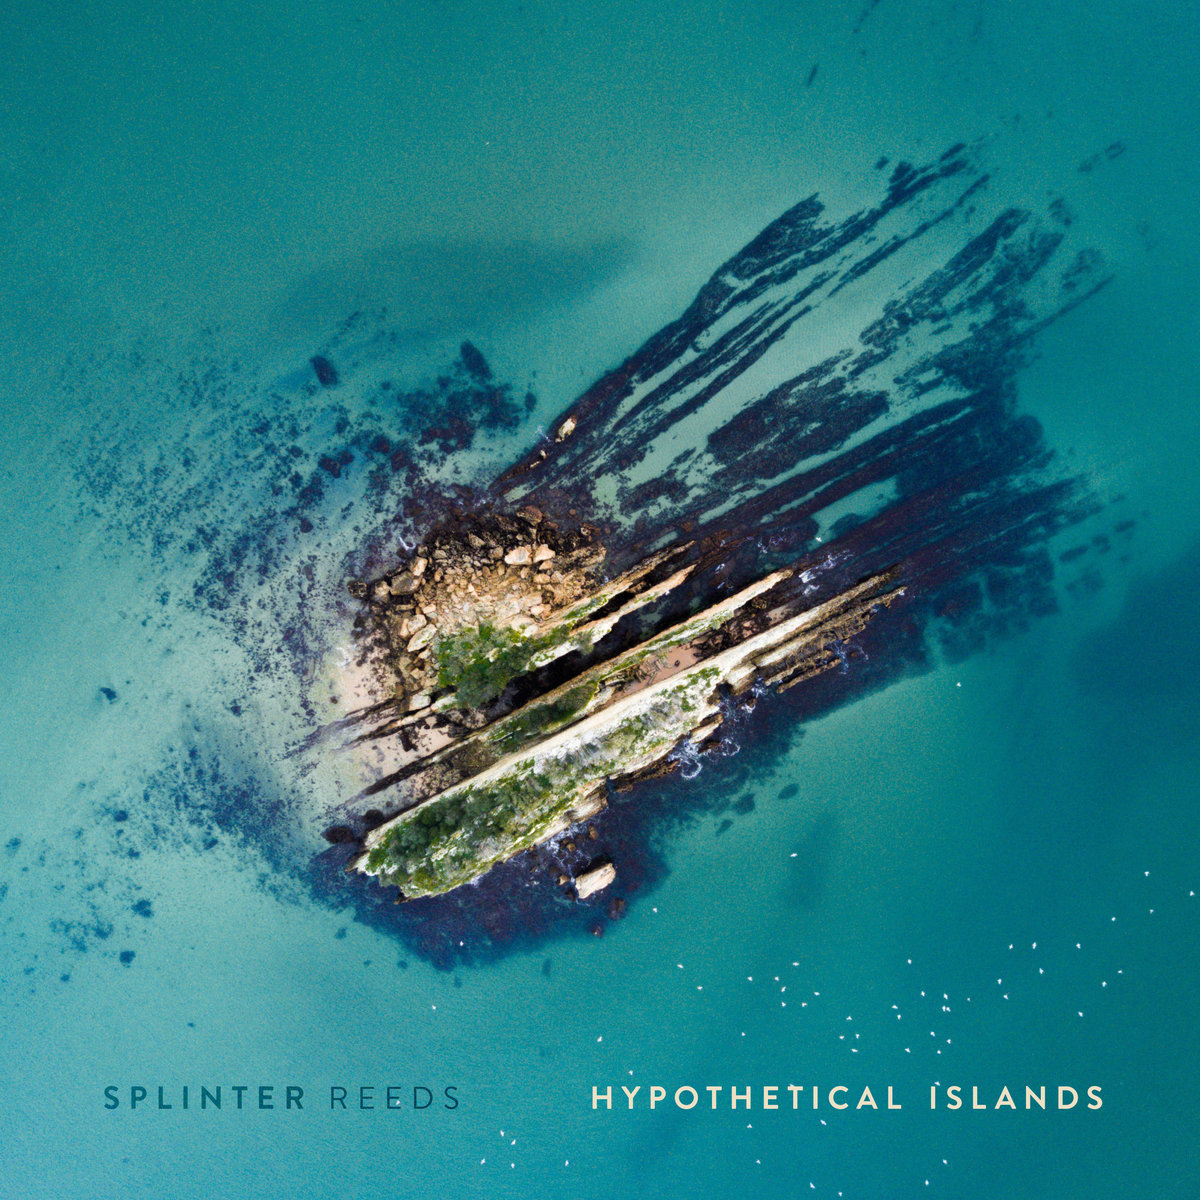 Copy of Splinter Reeds - Hypothetical Islands